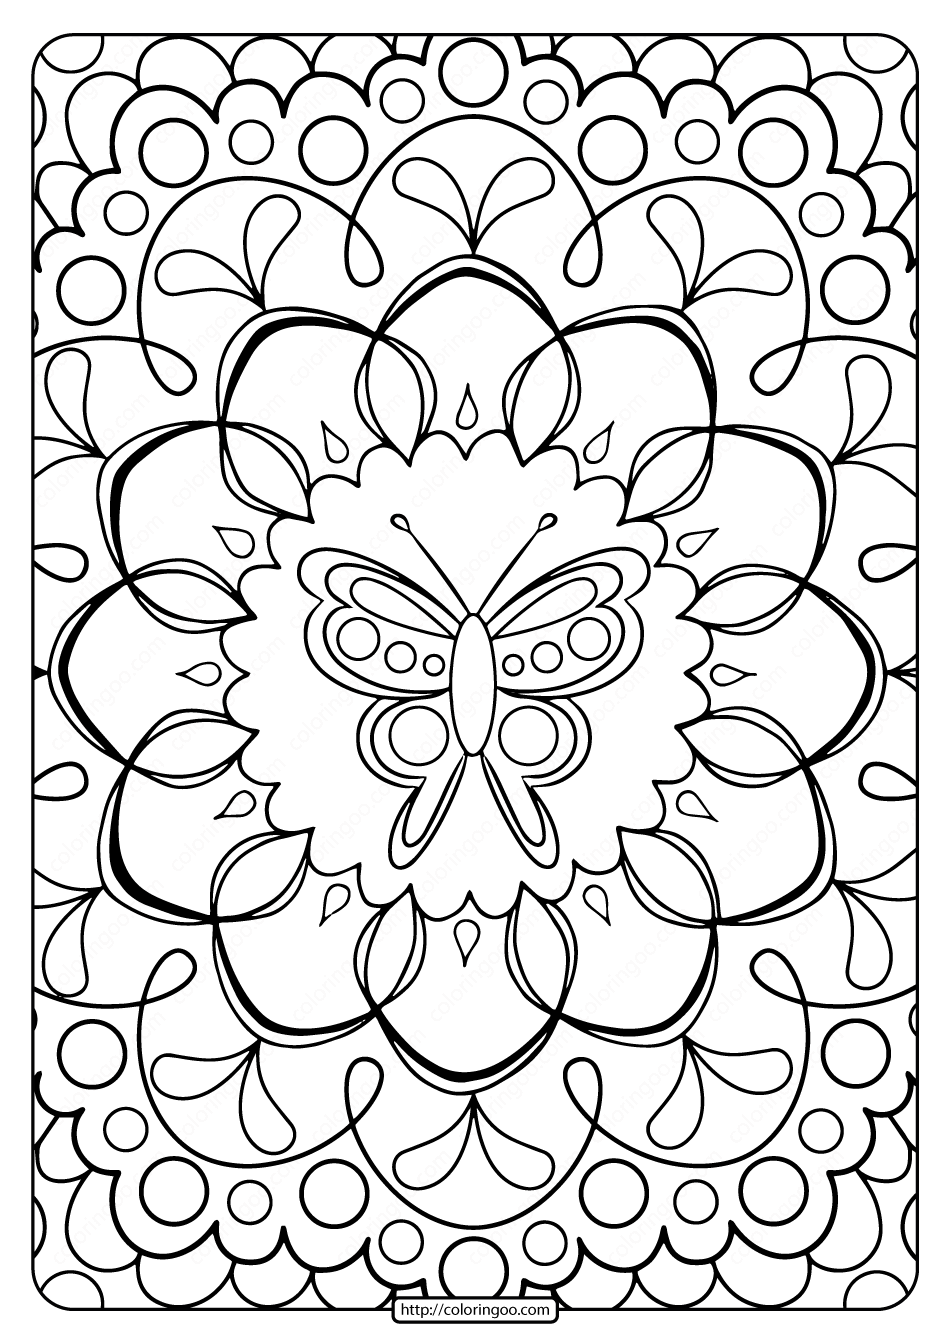 free coloring pages for adults printable printable coloring pages for adults 15 free designs pages free for adults printable coloring